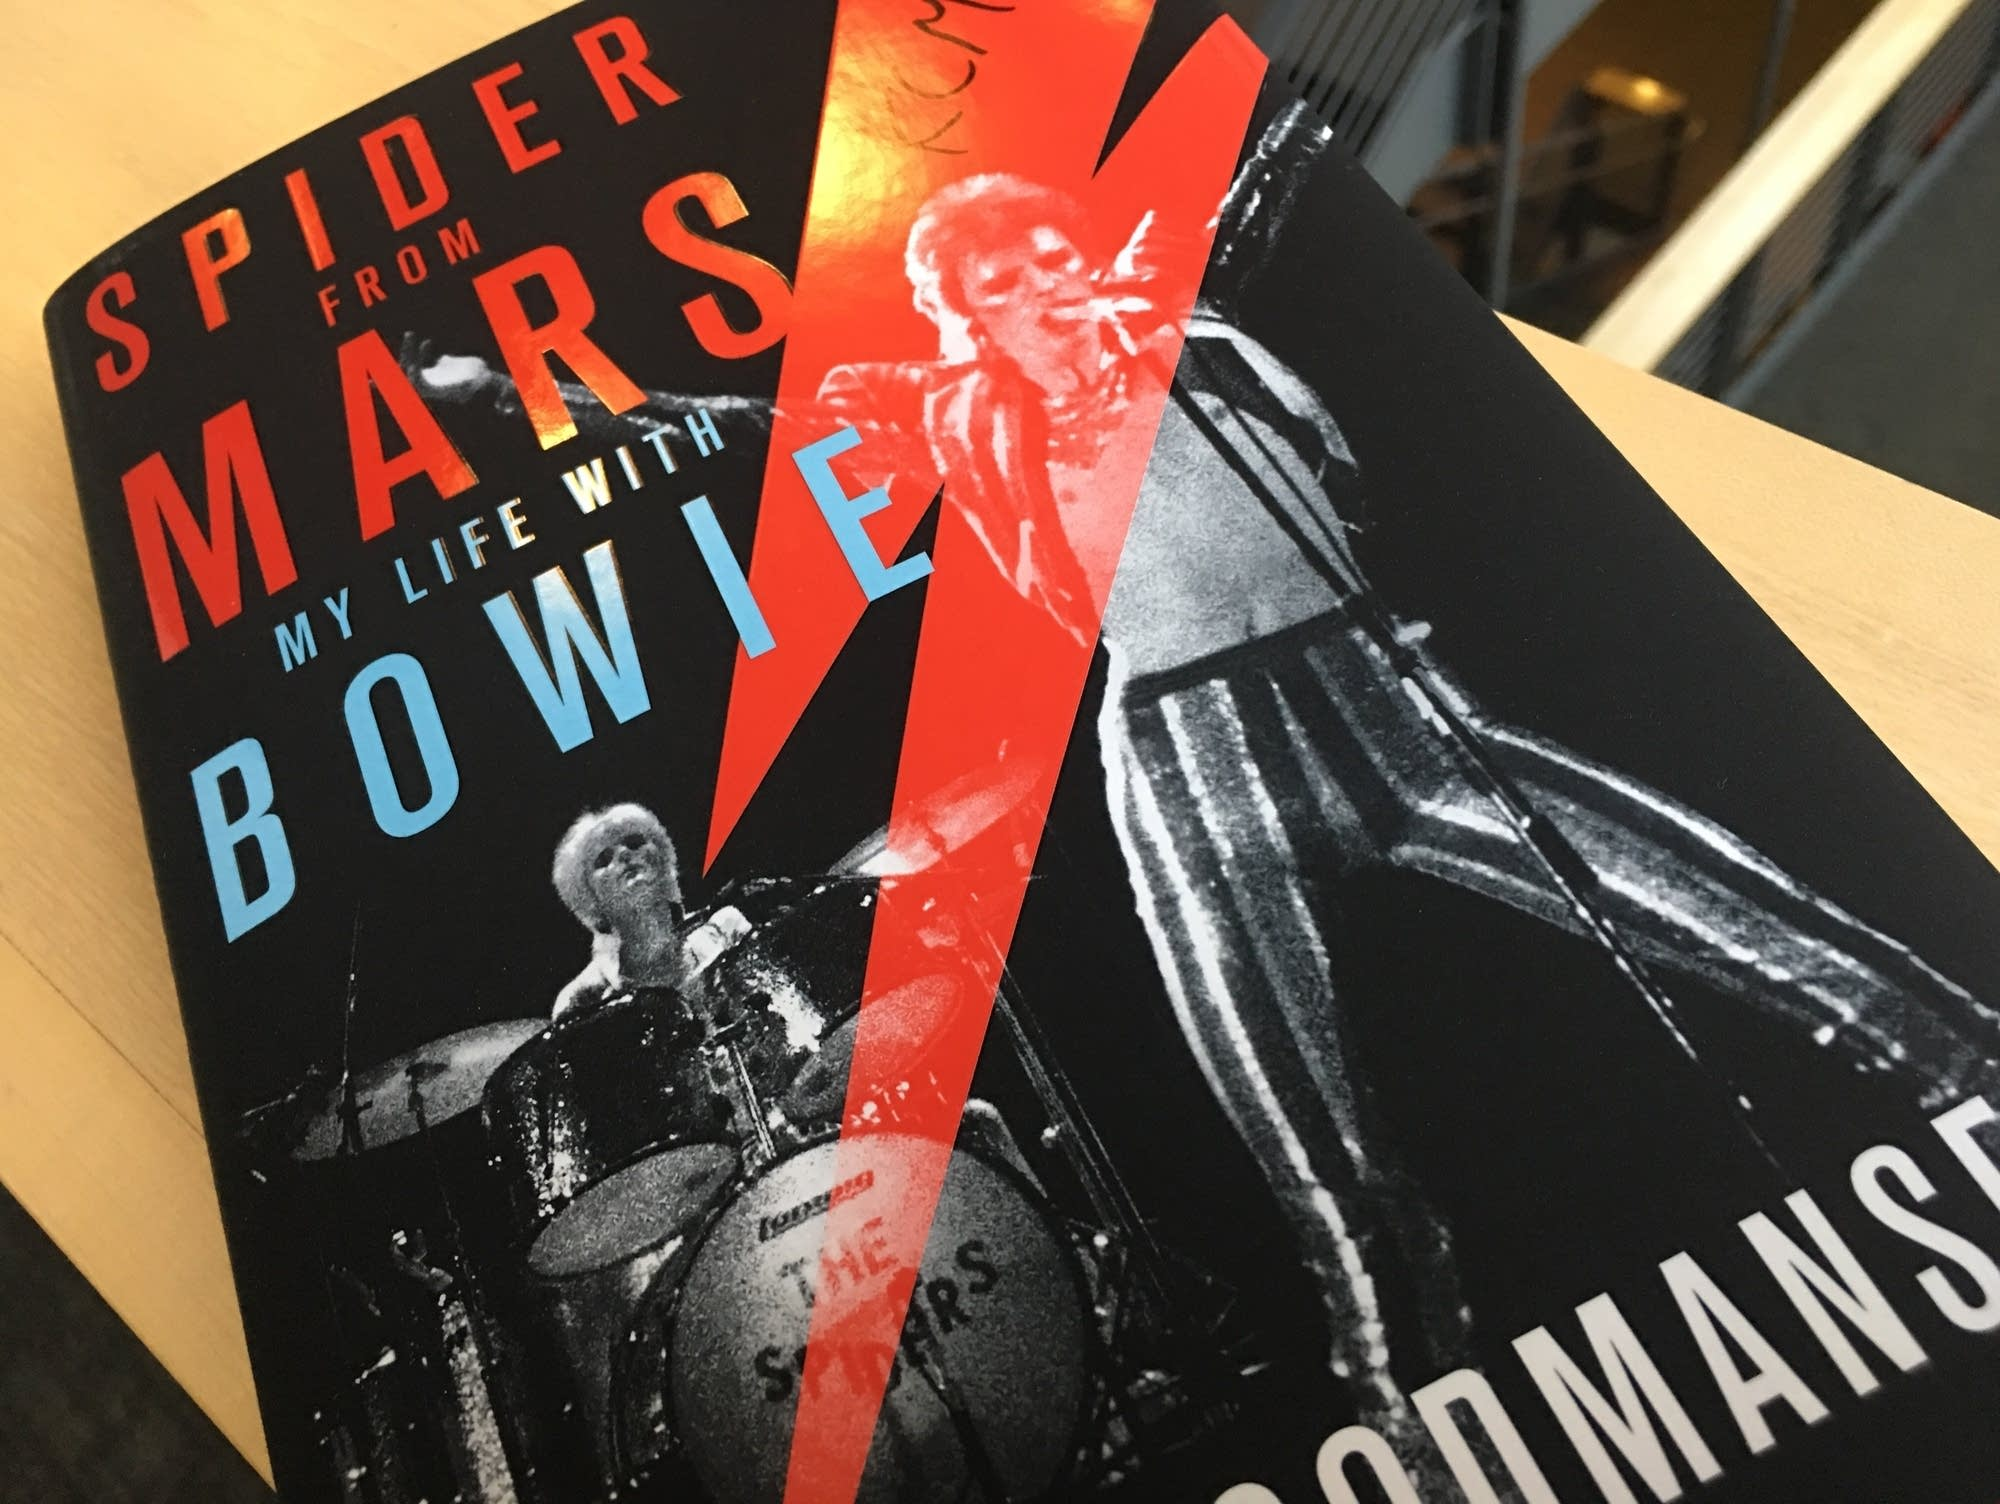 Woody Woodmansey's 'Spider from Mars'